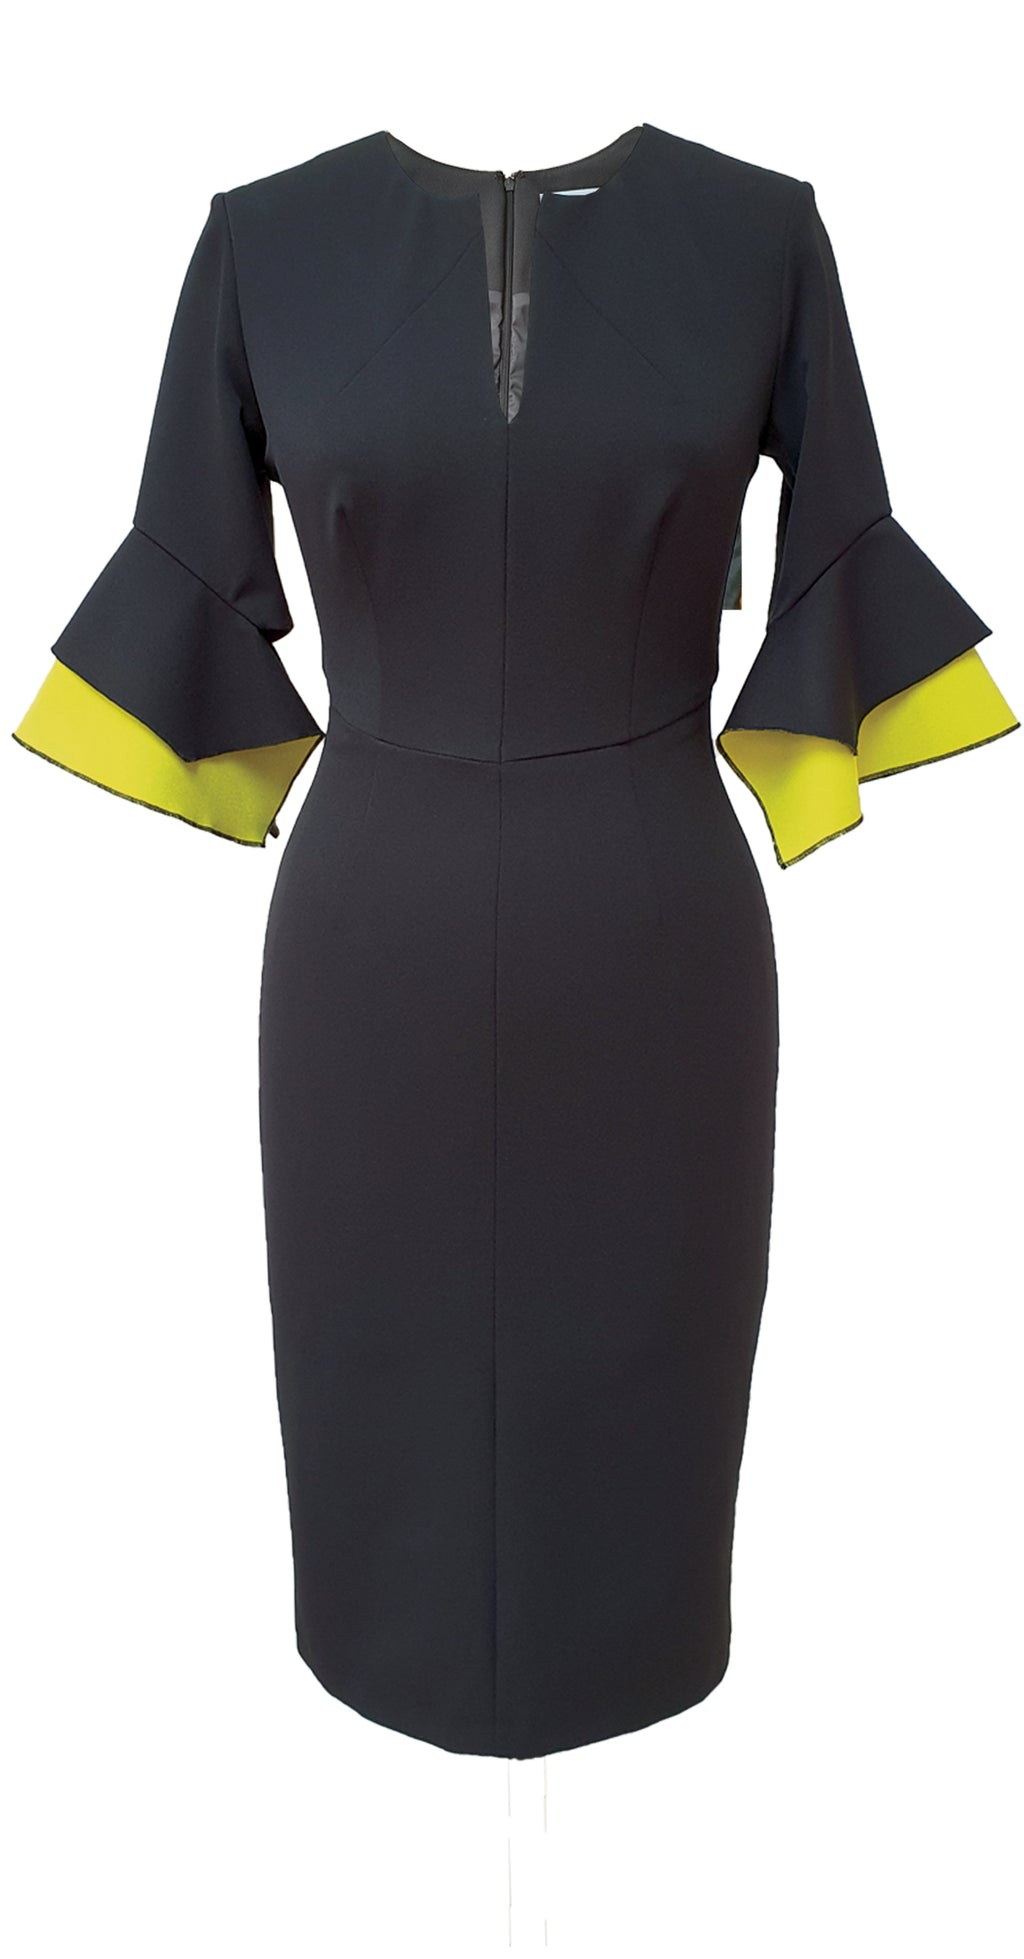 Susan Dress DRC318 Black/Yellow Bonded Crepe Sample, Size 8